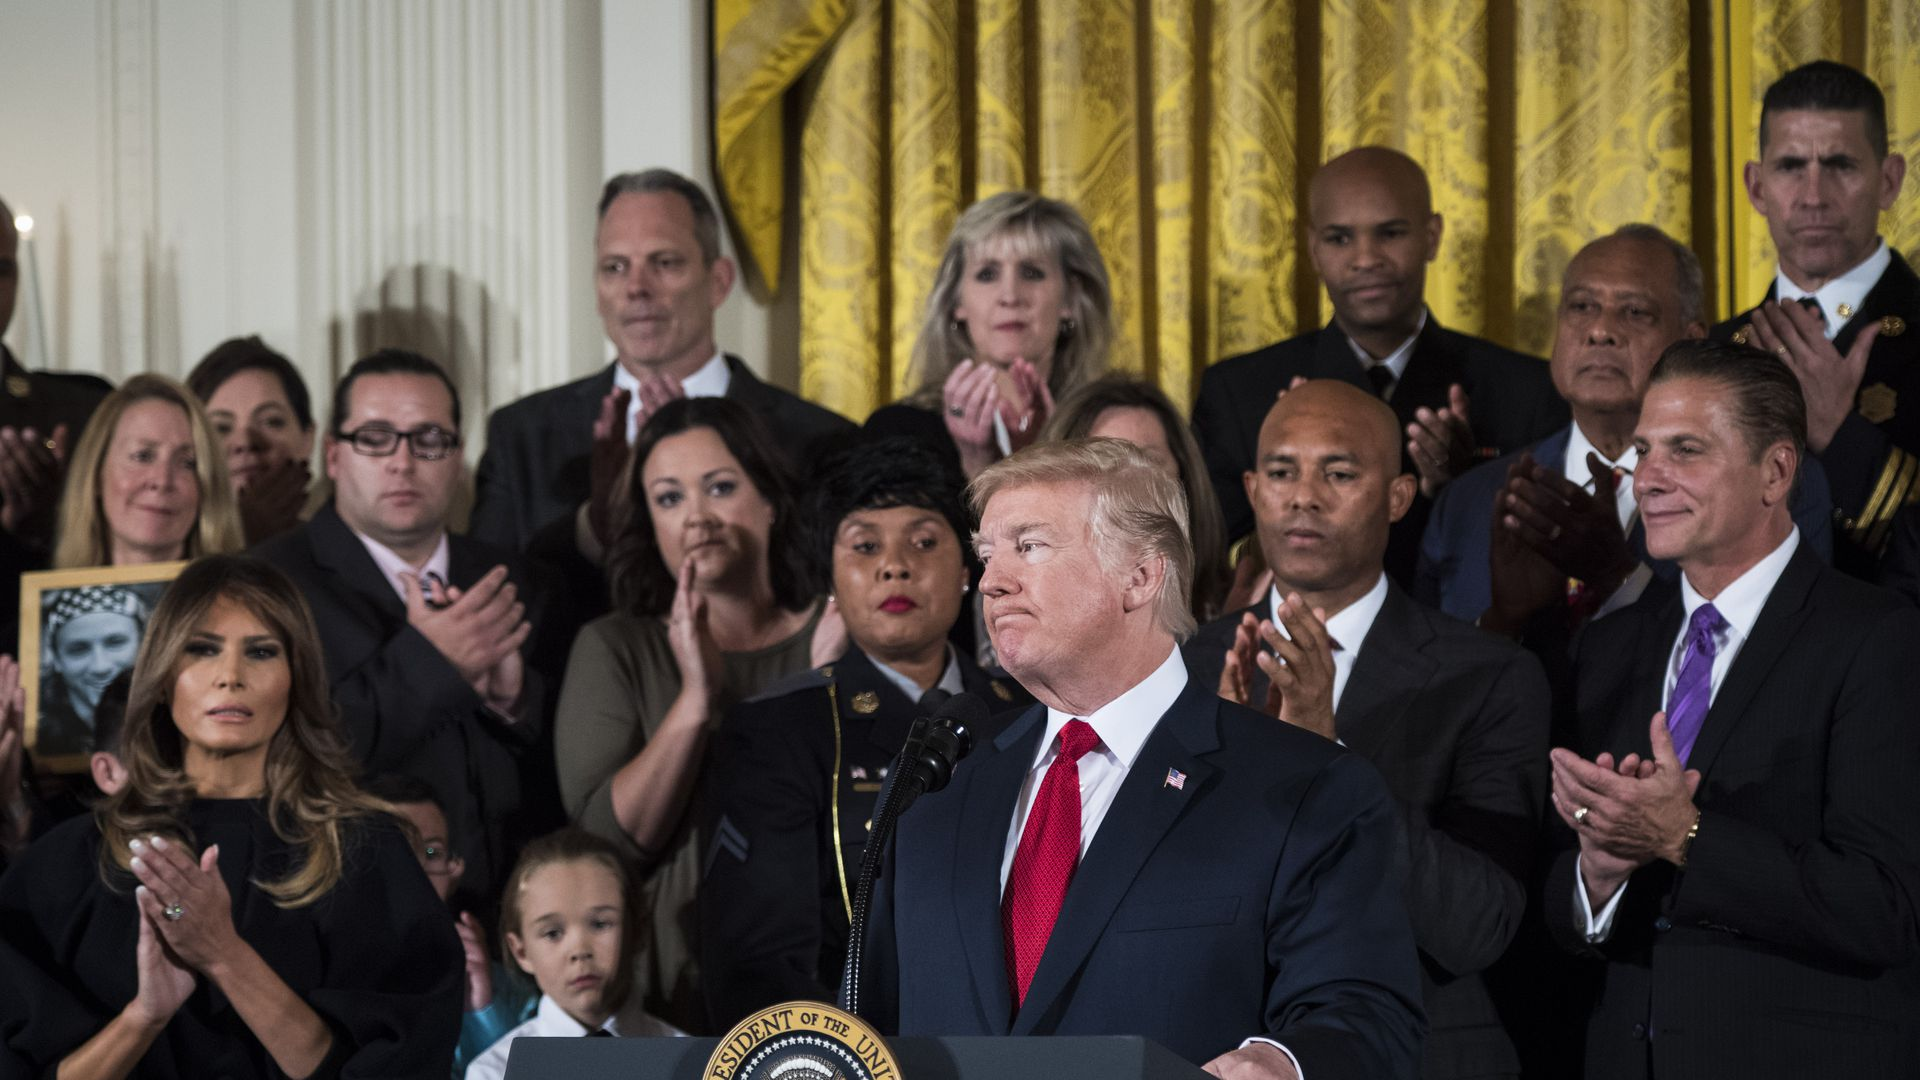 President Trump at an opioids event at the White House last year